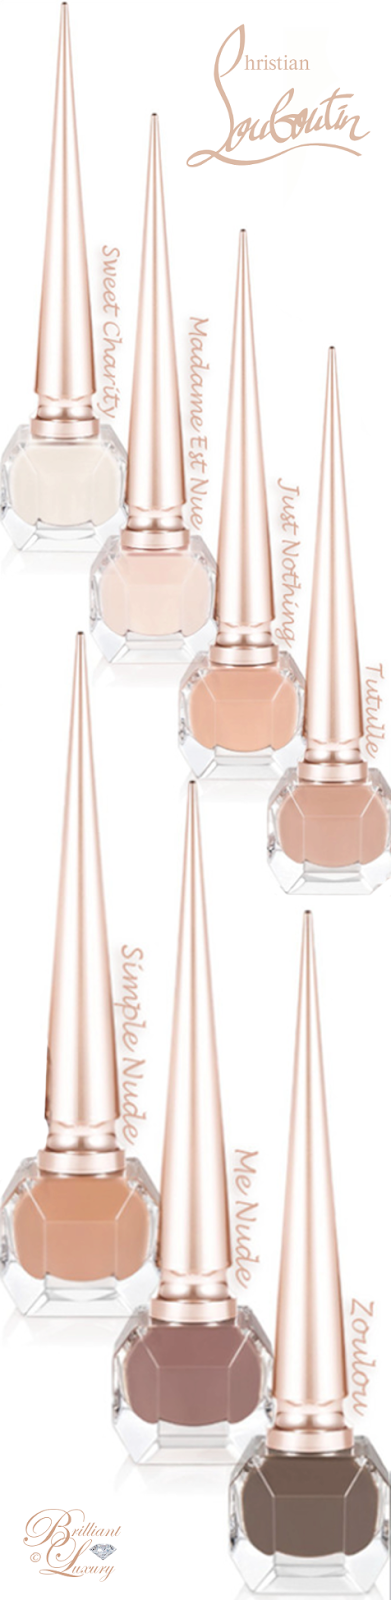 Brilliant Luxury ♦ Christian Louboutin nail lacquer nude